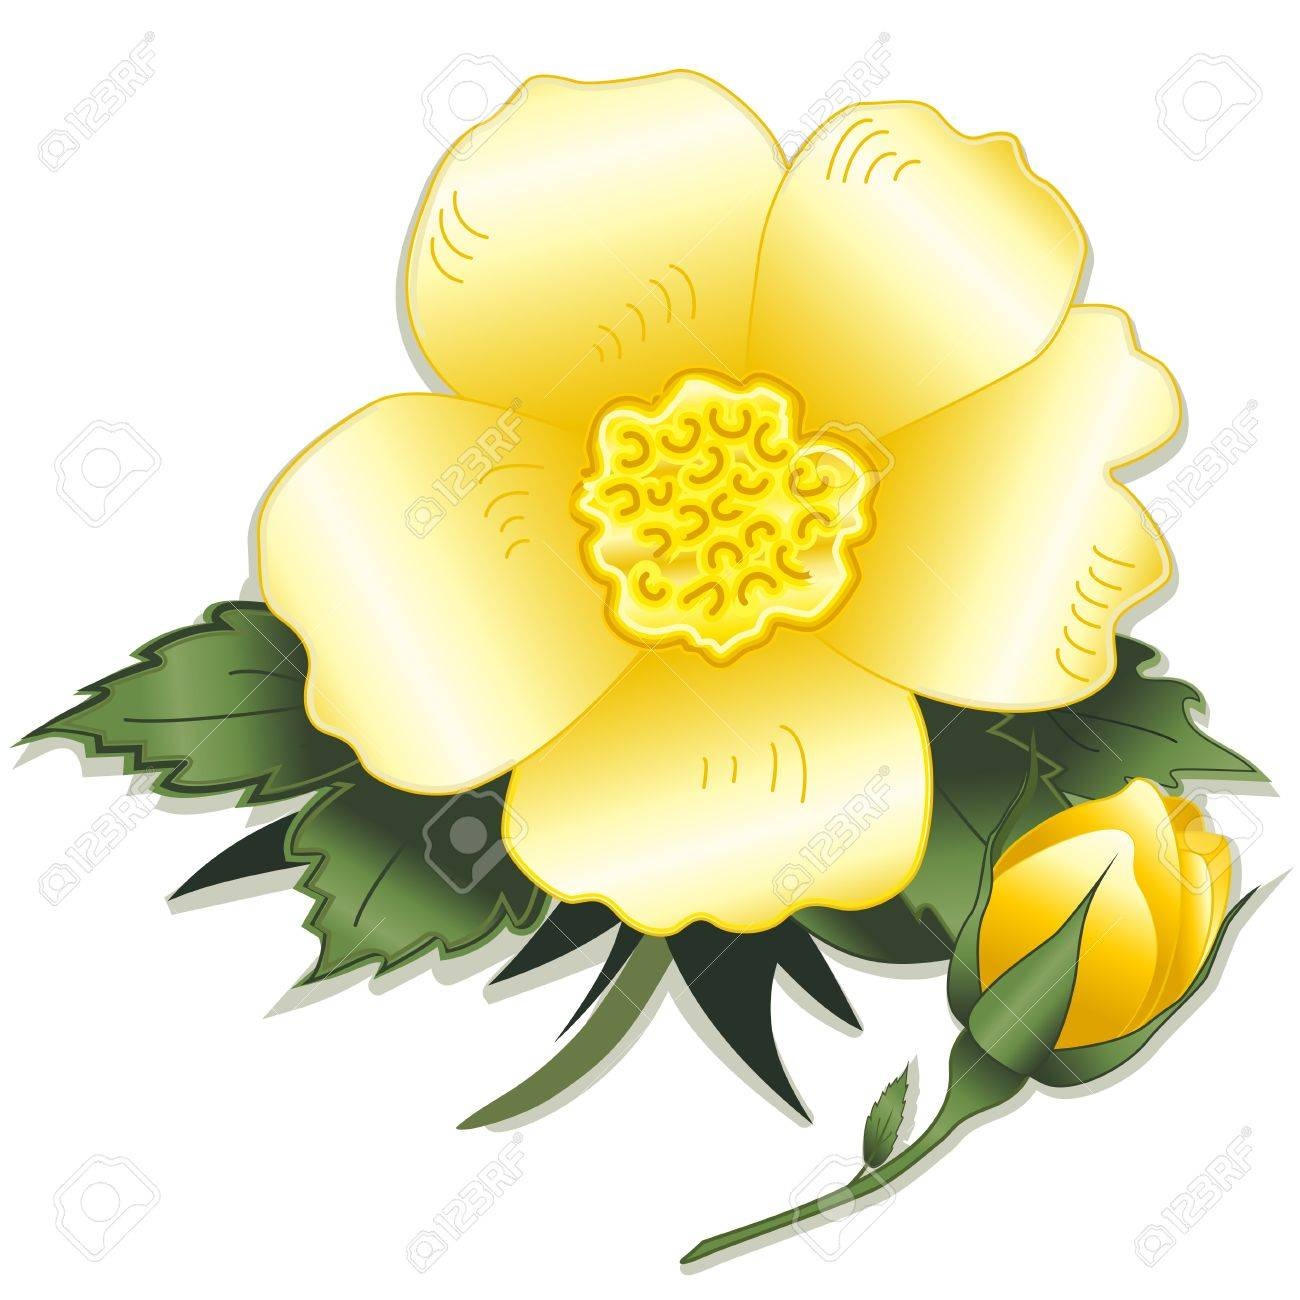 Wild prairie yellow rose flower royalty free cliparts vectors wild prairie yellow rose flower stock vector 12392298 dhlflorist Image collections